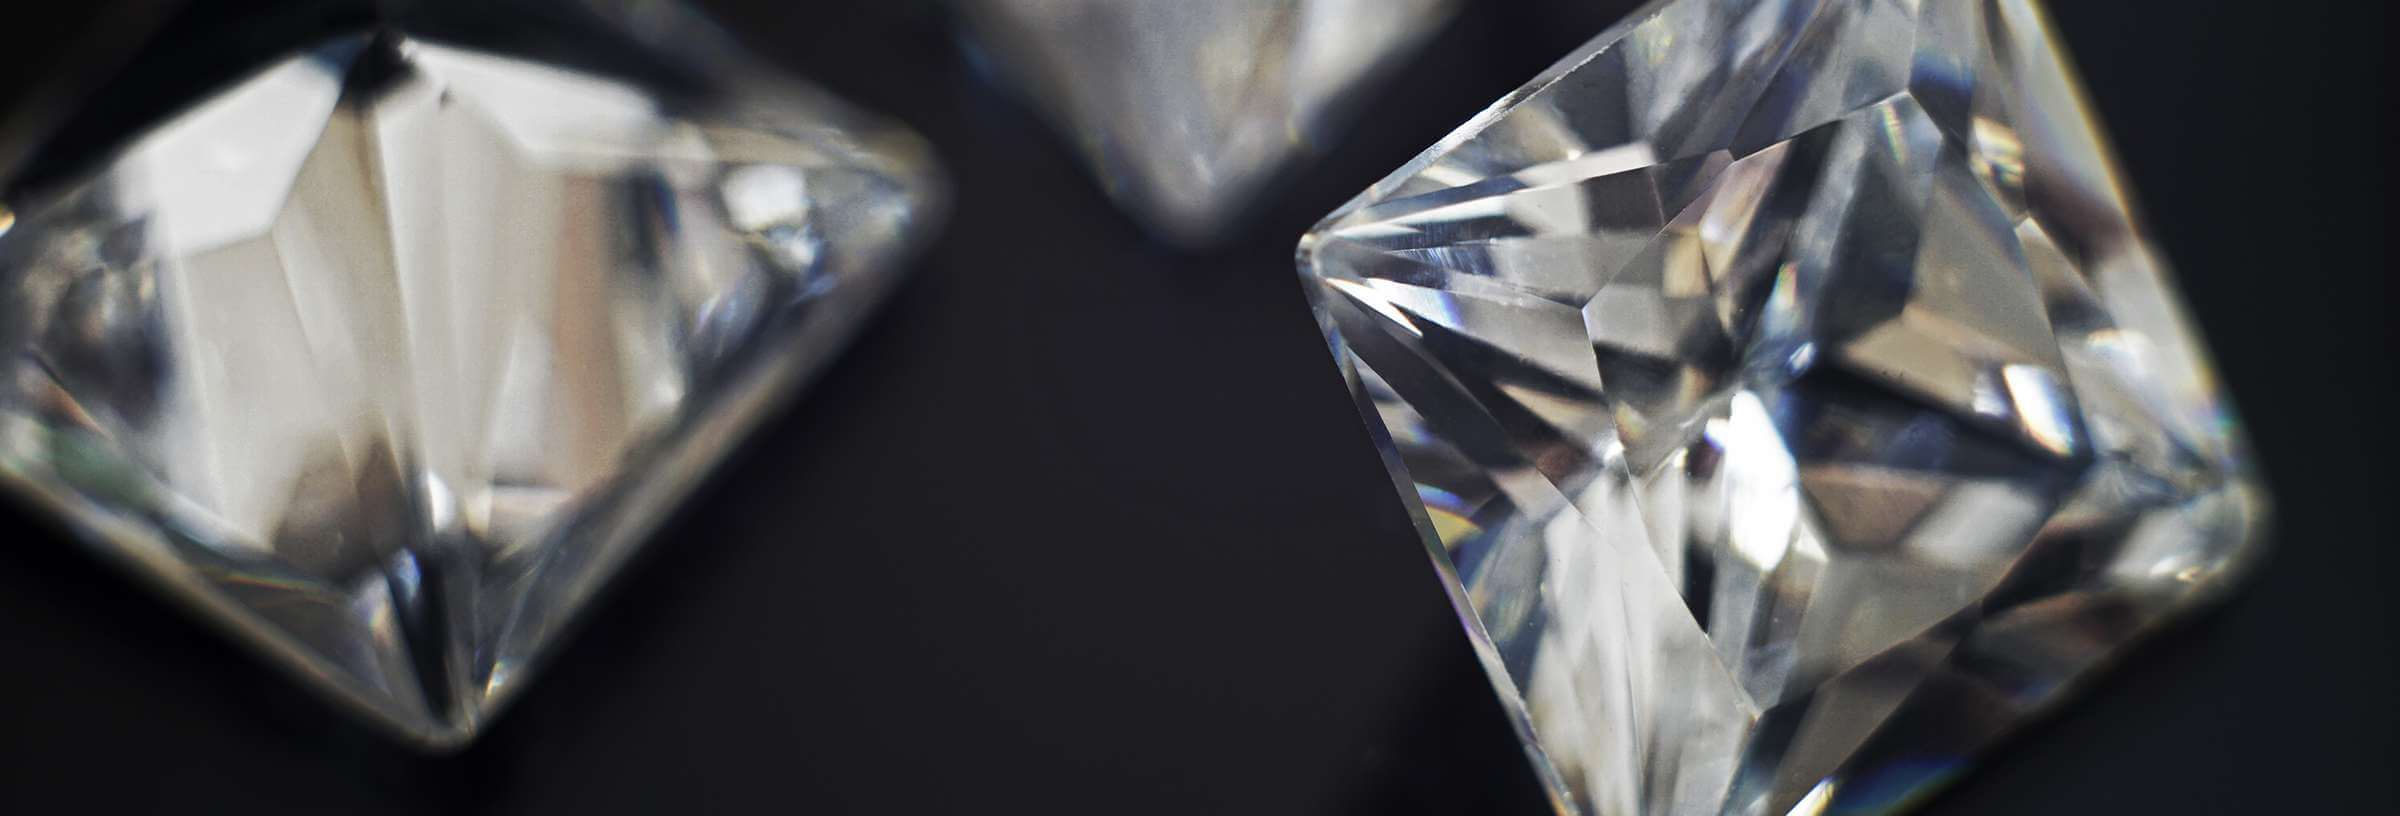 Diamond Myths Dispelled